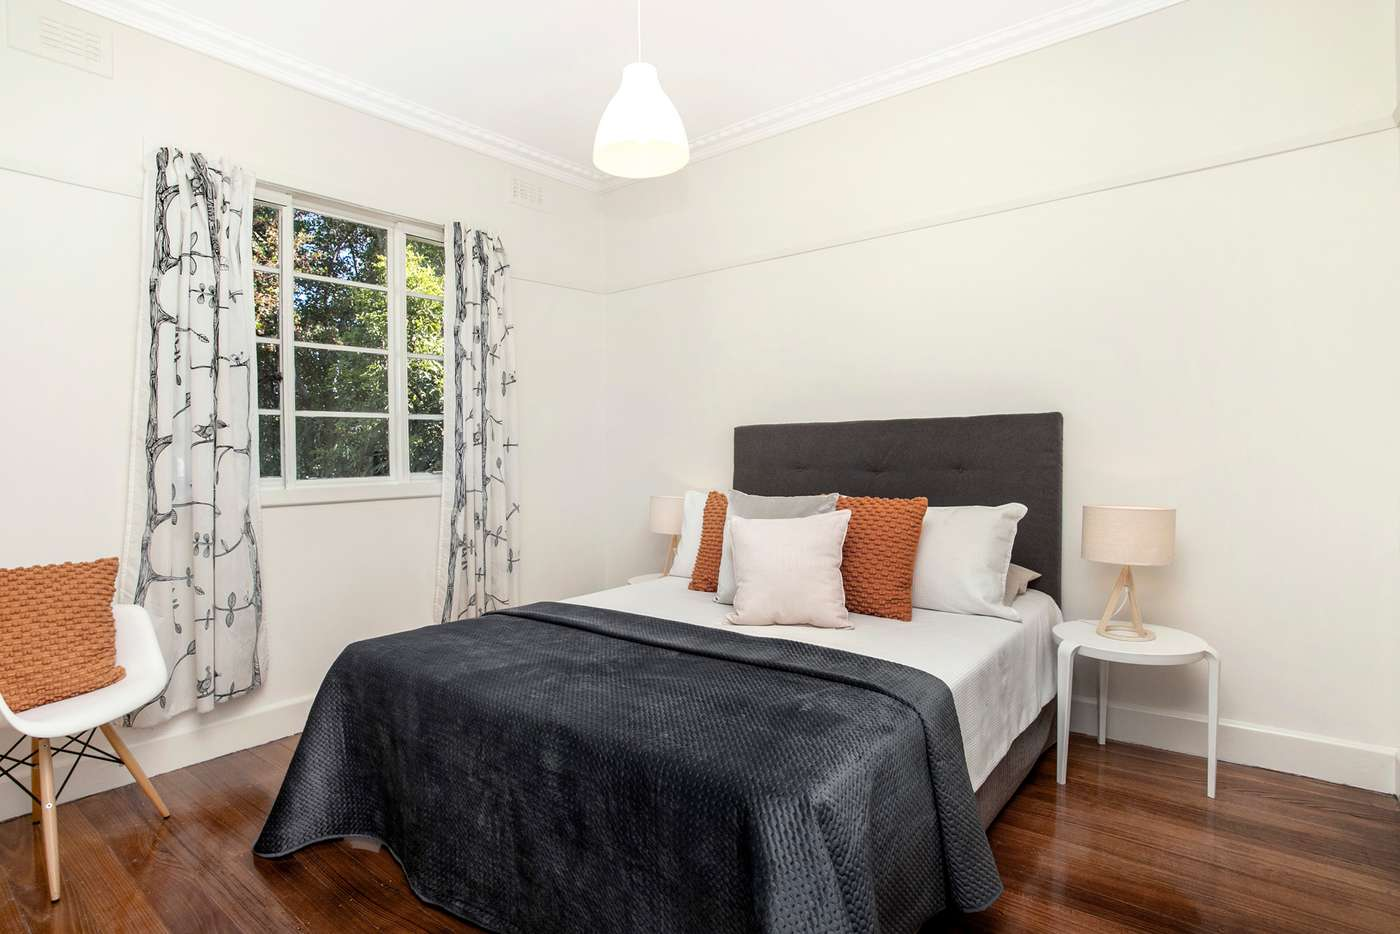 Fifth view of Homely house listing, 34 Mernda Street, Sunshine West VIC 3020